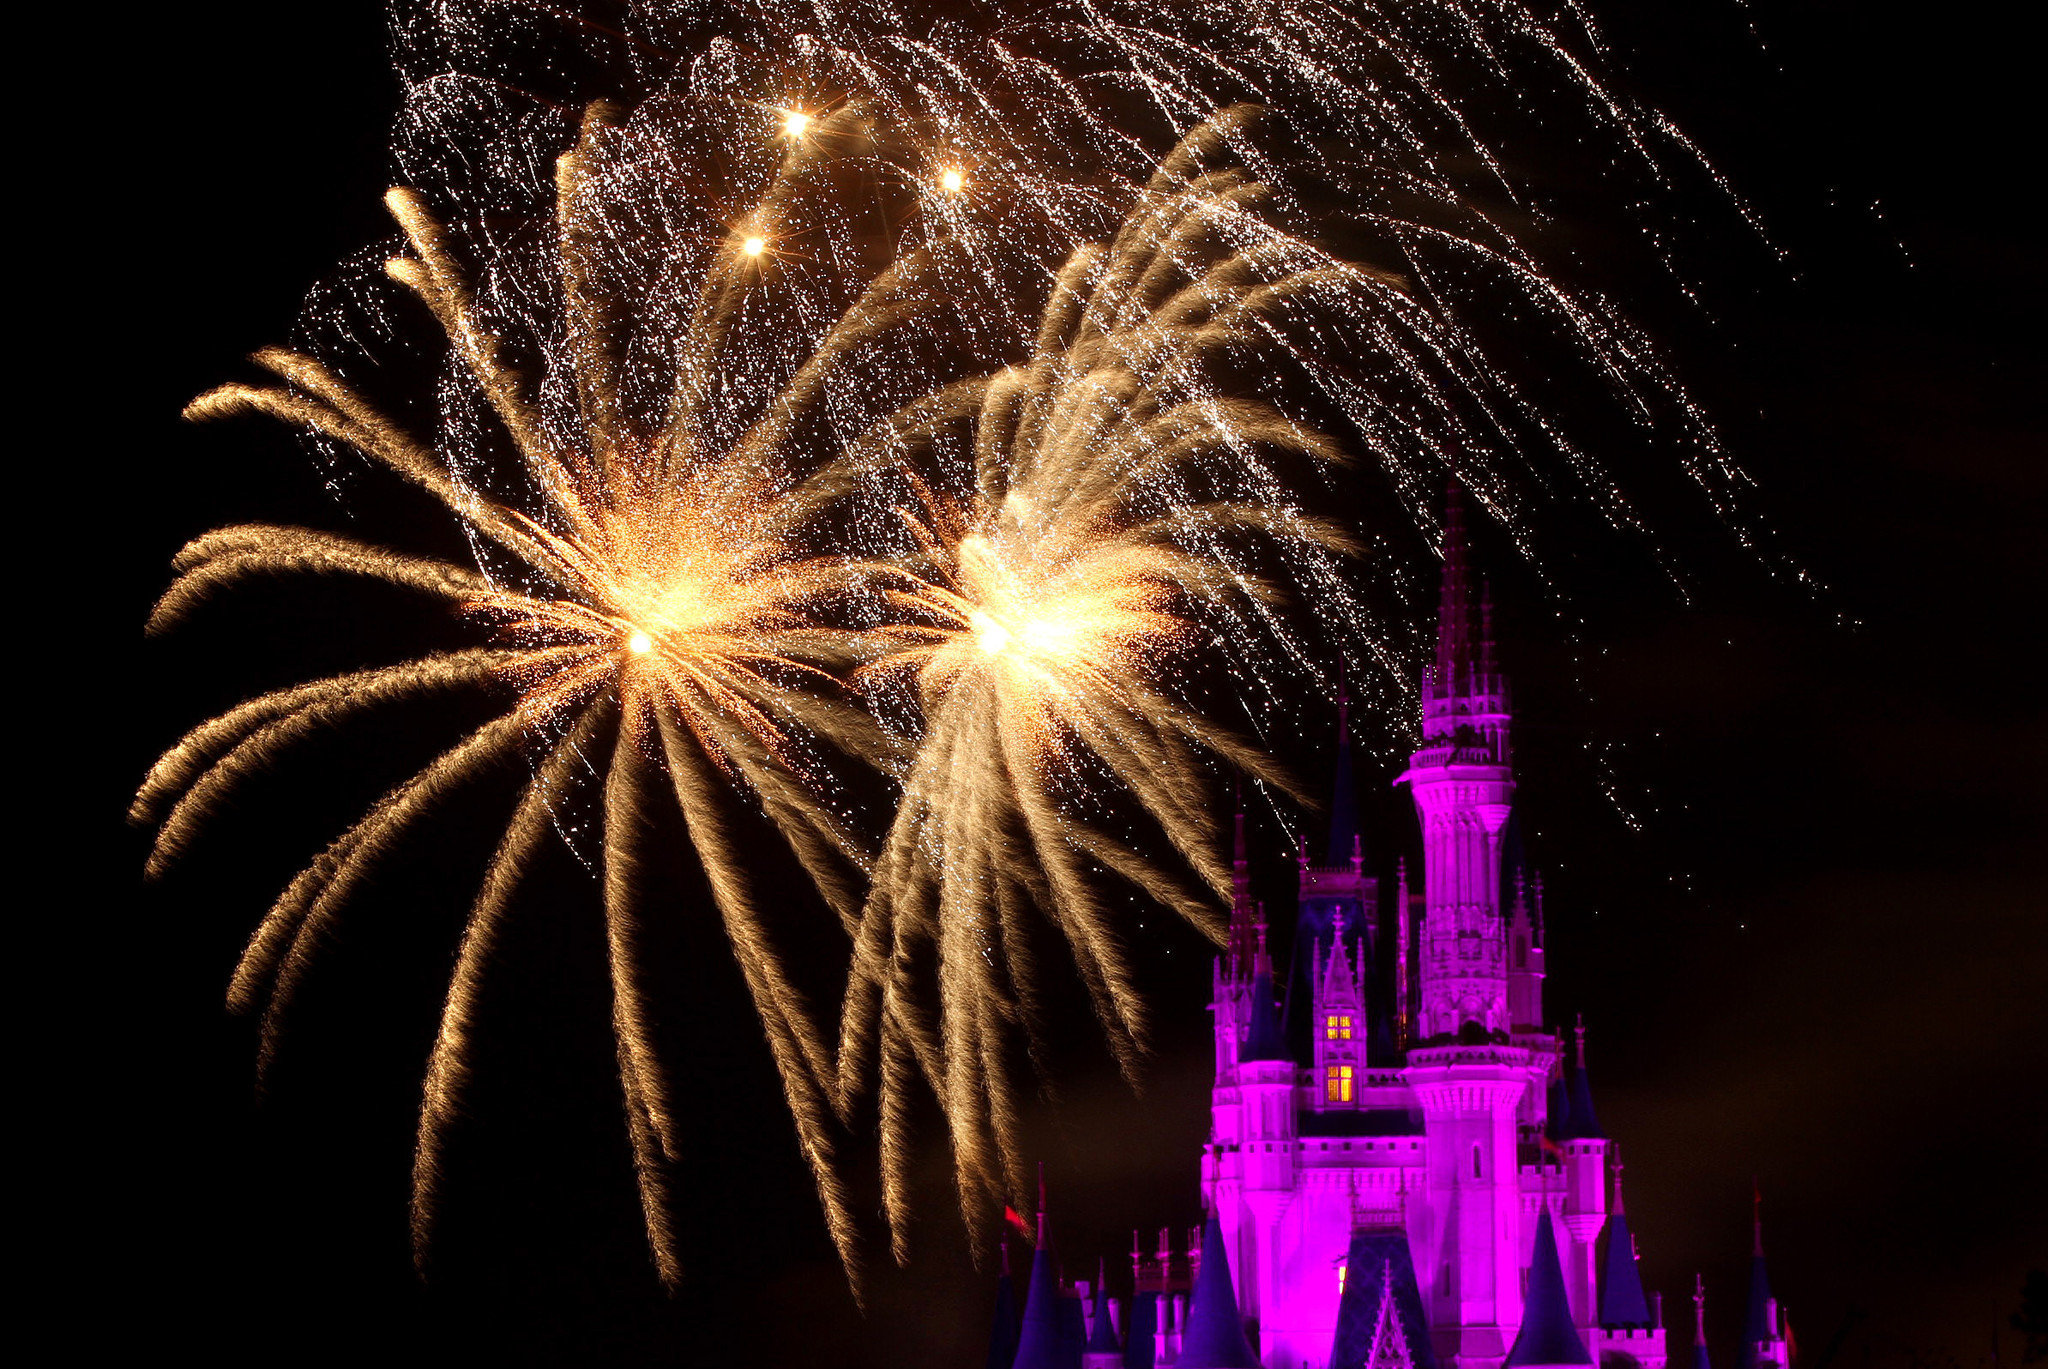 Fireworks explode over Cinderella Castle, at Walt Disney World's Magic Kingdom, during the 'Wishes' fireworks show.